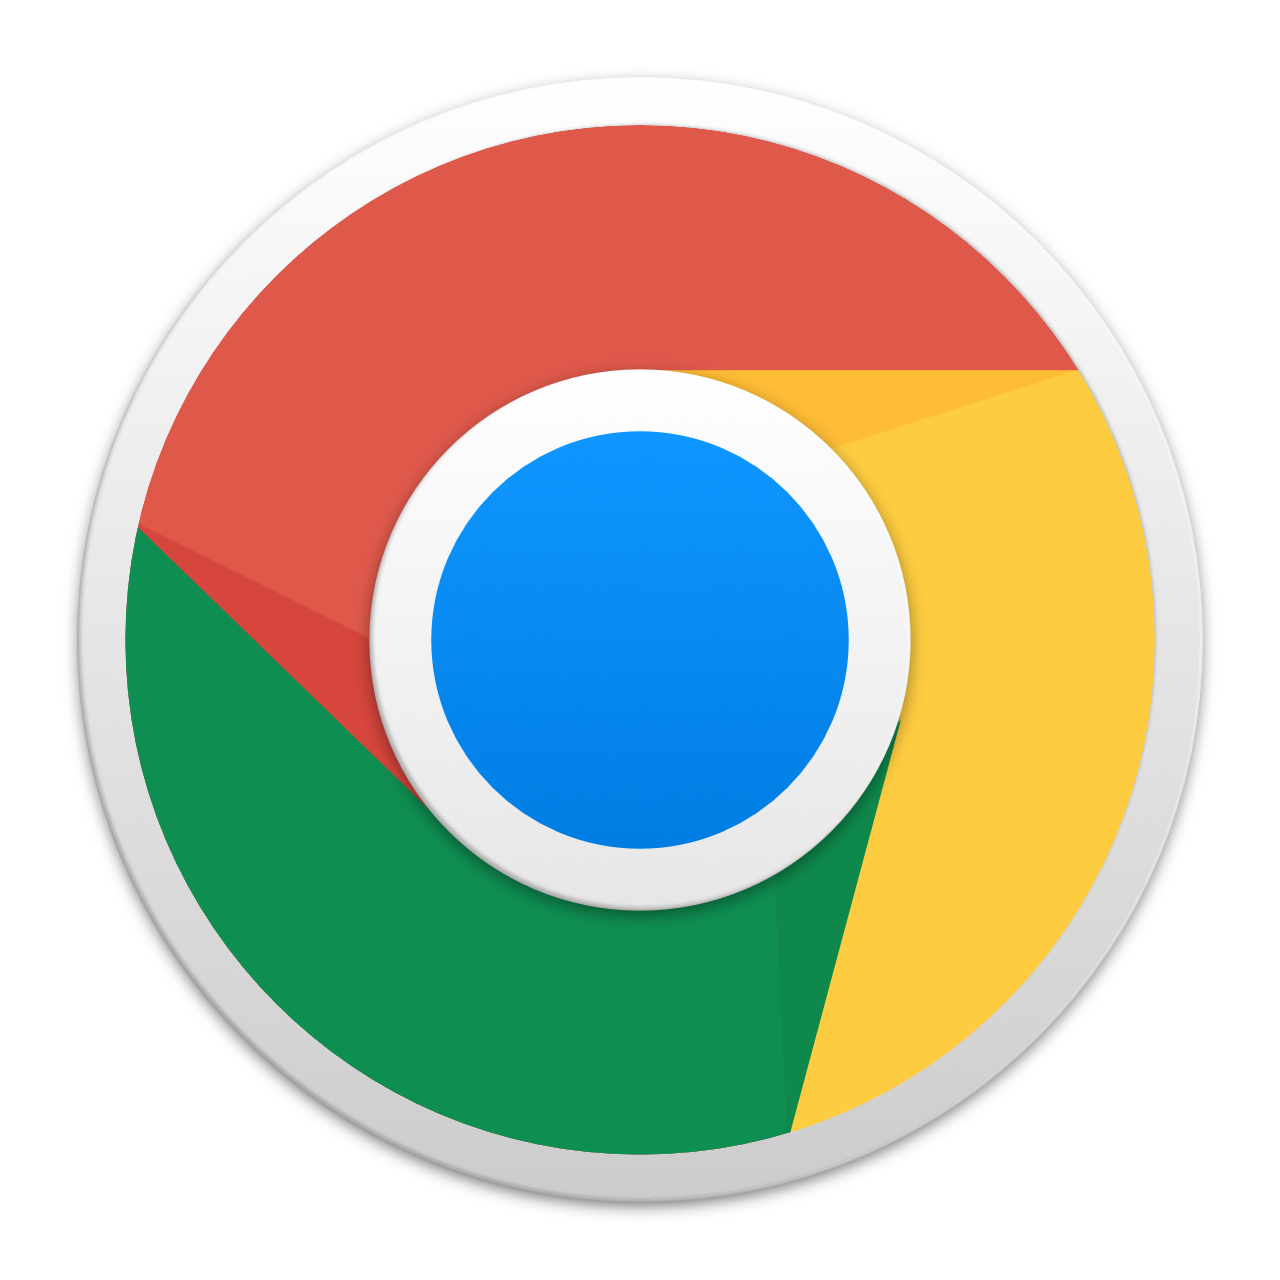 Google Chrome App Icon (Yosemite Style) Updated! by macOScrazy on.